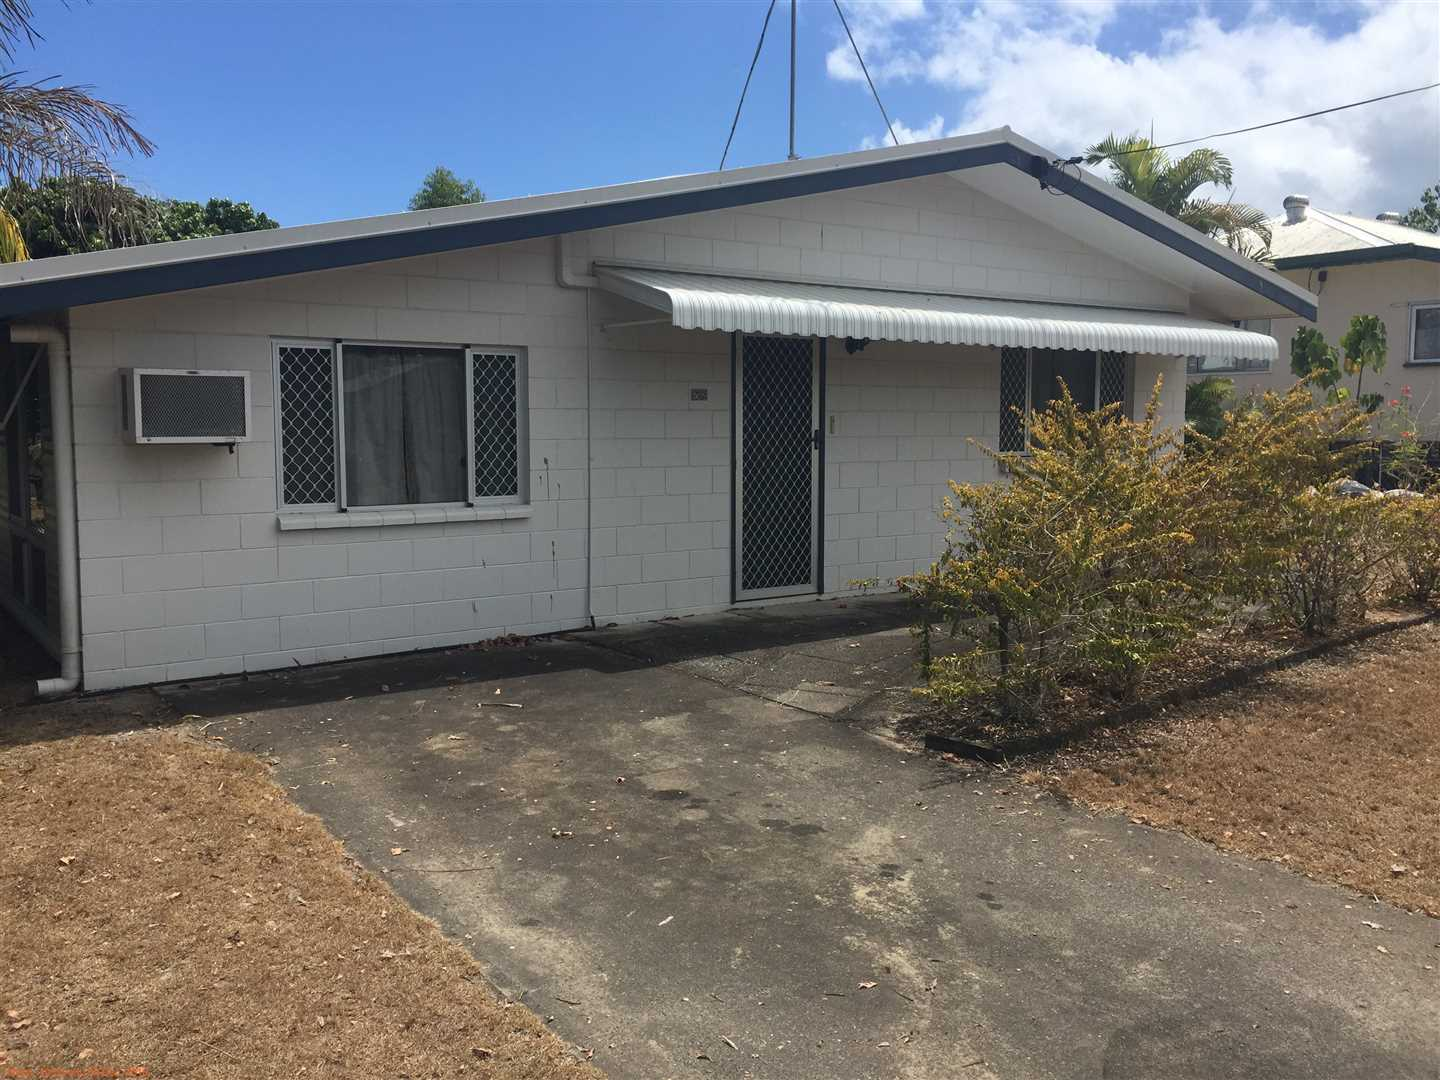 2 Bedroom Family home close to beautiful Cardwell foreshore.